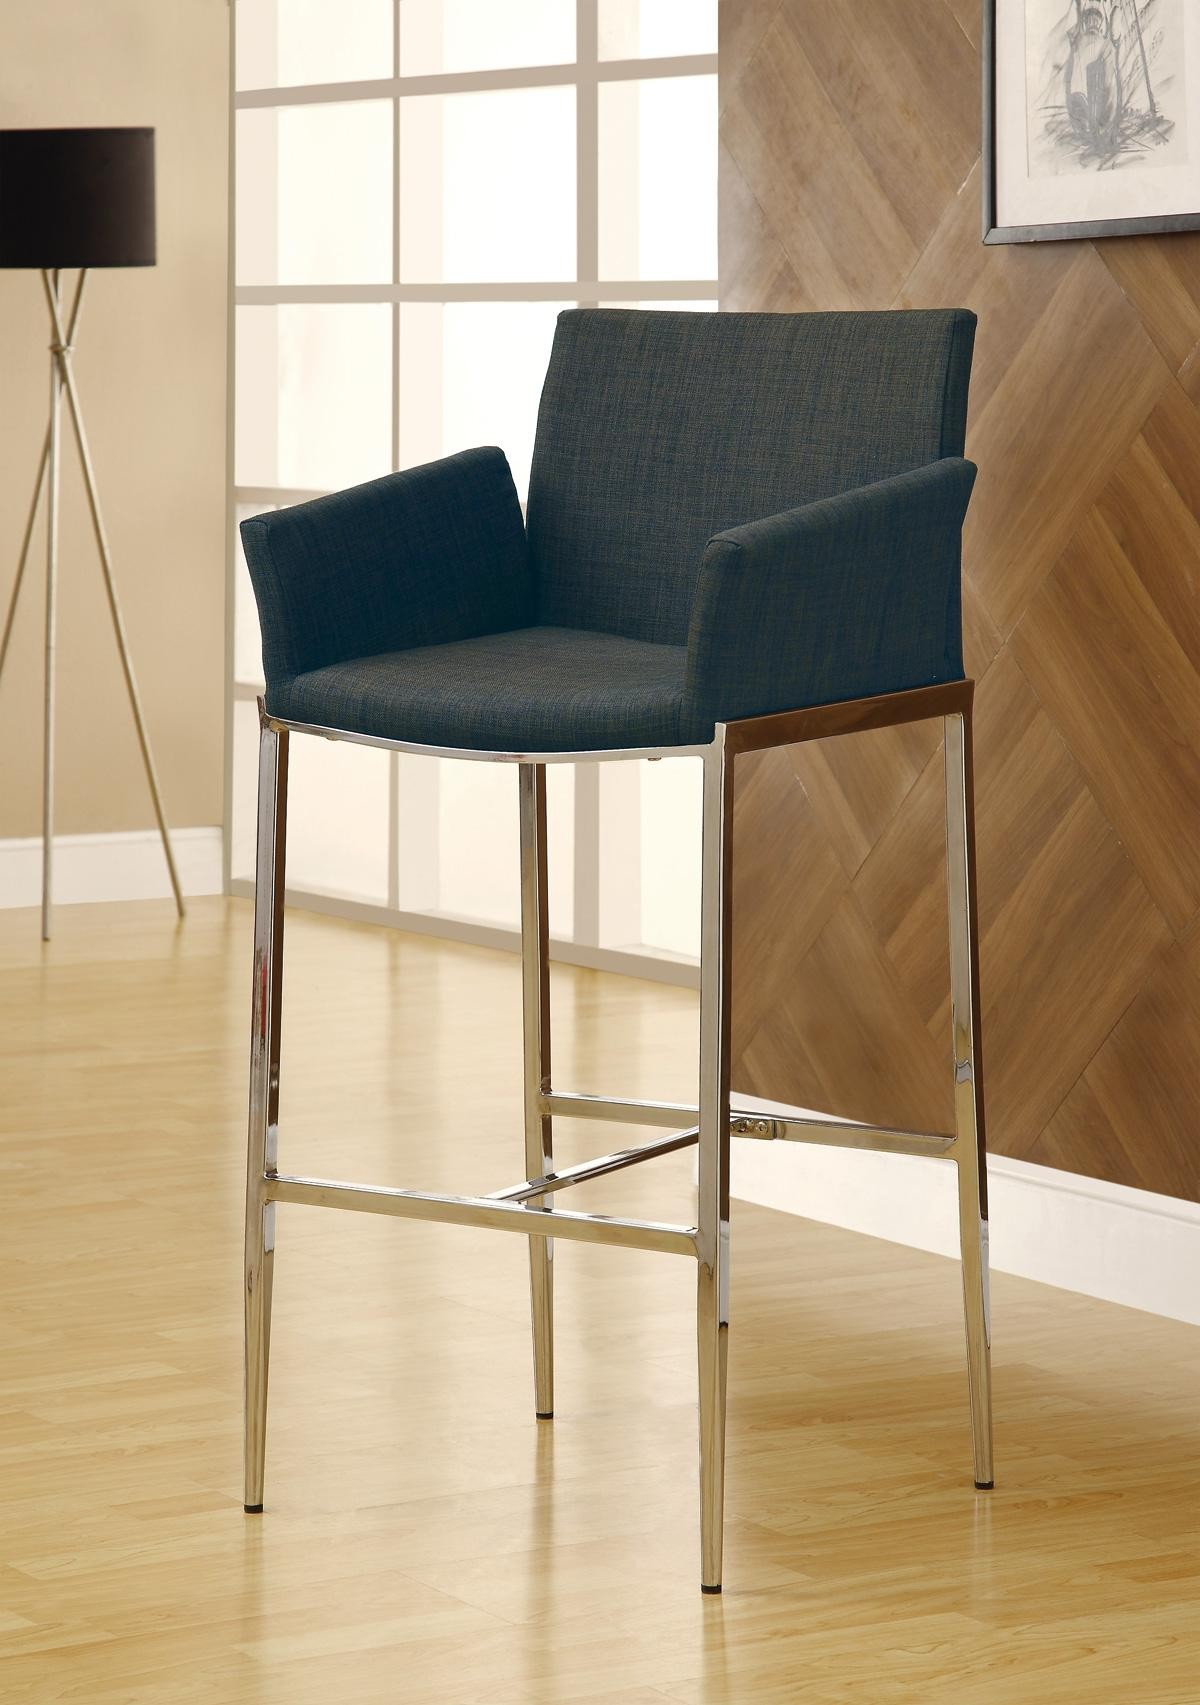 Grey Bar Stool 120727 Set Of 2 From Coaster 120727